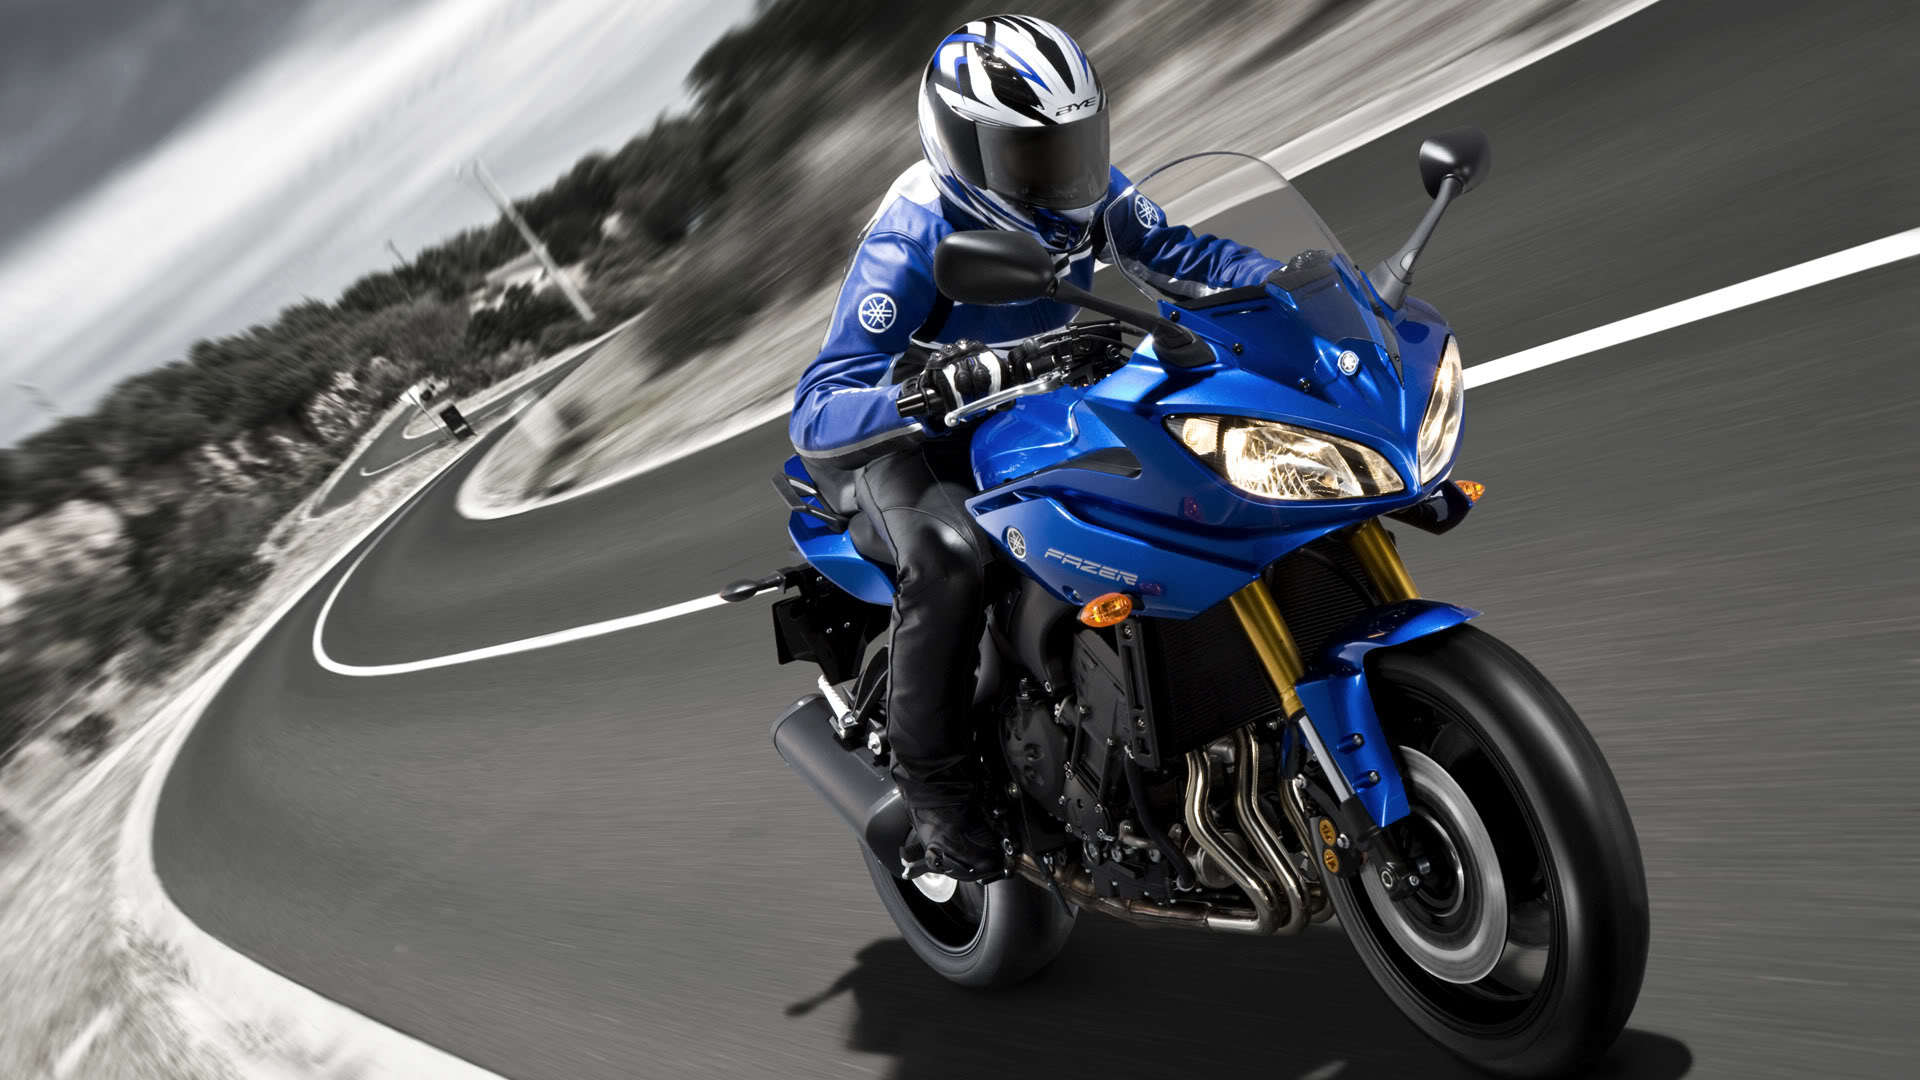 Yamaha vehicles motorbikes HD Wallpaper